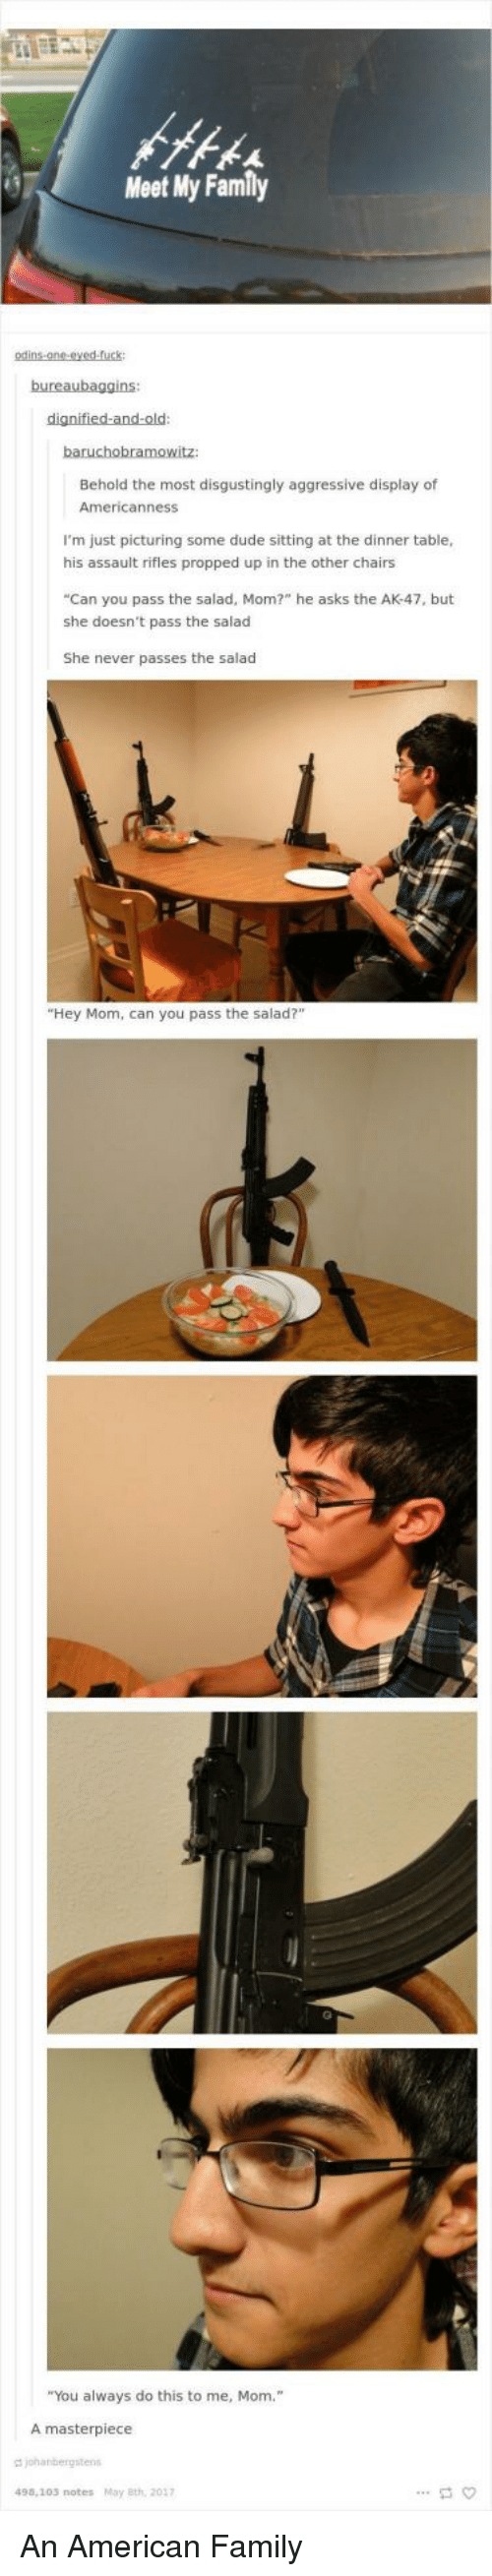 """Assault Rifles: Meet My Family  Behold the most disgustingly aggressive display of  Americanness  I'm just picturing some dude sitting at the dinner table  his assault rifles propped up in the other chairs  """"Can you pass the salad, Mom?"""" he asks the AK-47, but  she doesn't pass the salad  She never passes the salad  """"Hey Mom, can you pass the salad?  """"You always do this to me, Mom.""""  A masterpiece  490,103 notes May 8th, 2017 An American Family"""